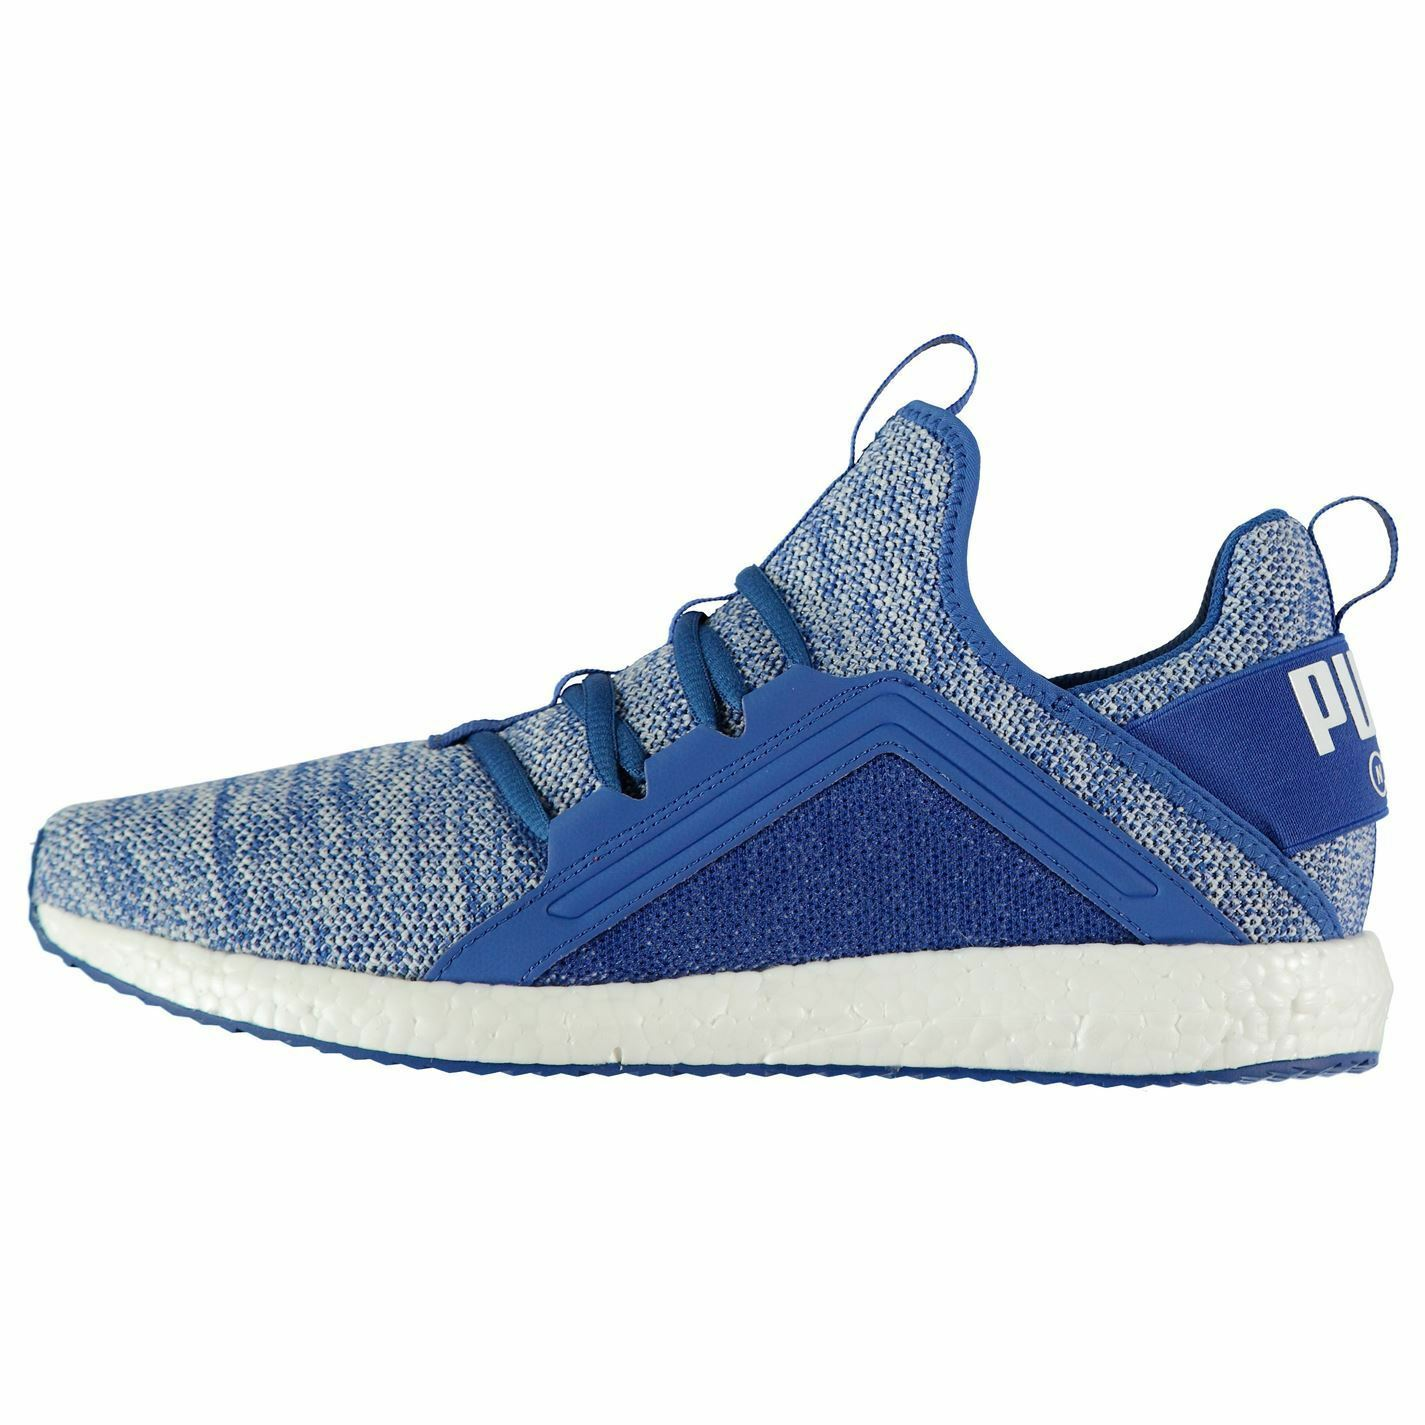 Puma Mega NGRY Knit Trainers hommes bleu/blanc Athletic SneakersChaussures